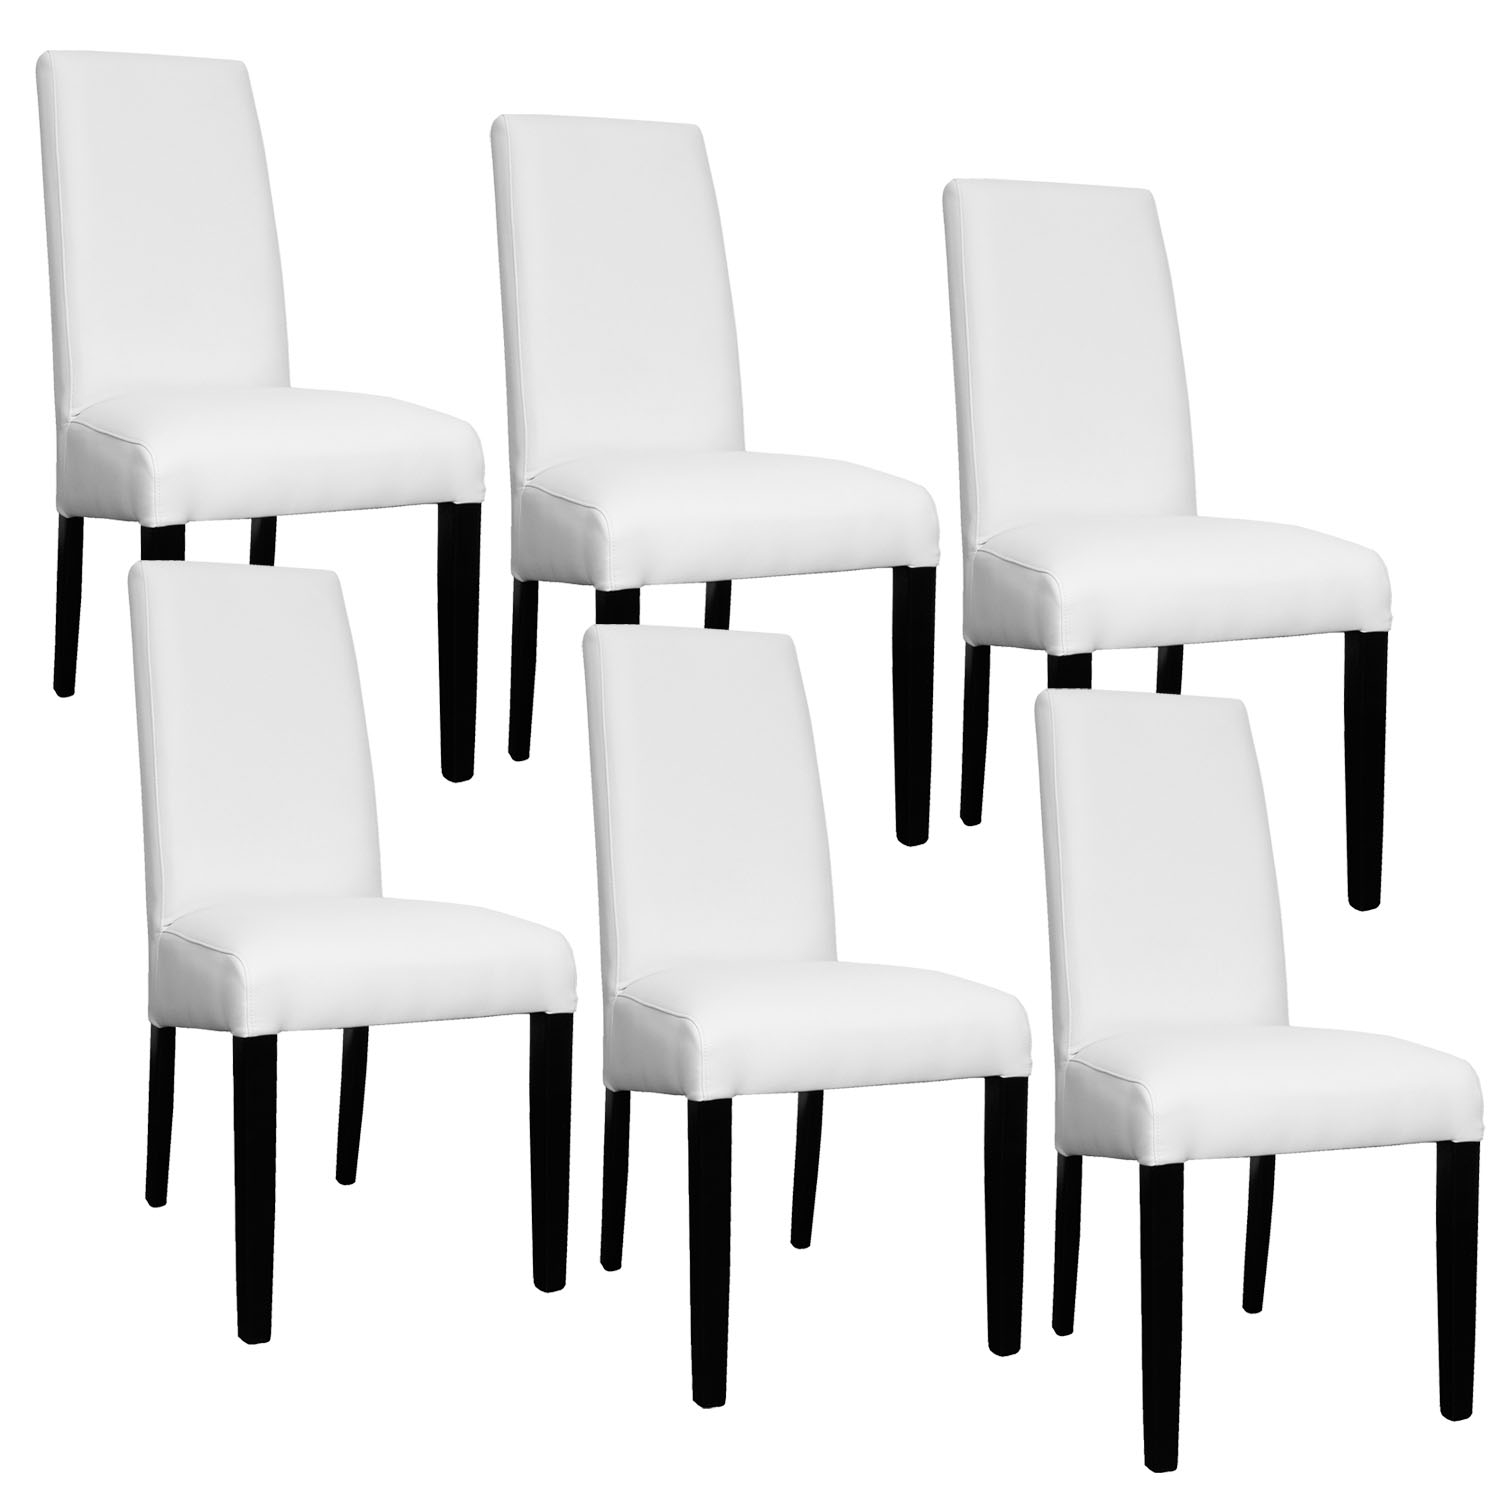 deco in paris lot de 6 chaises blanche muka muka 6 blanc. Black Bedroom Furniture Sets. Home Design Ideas